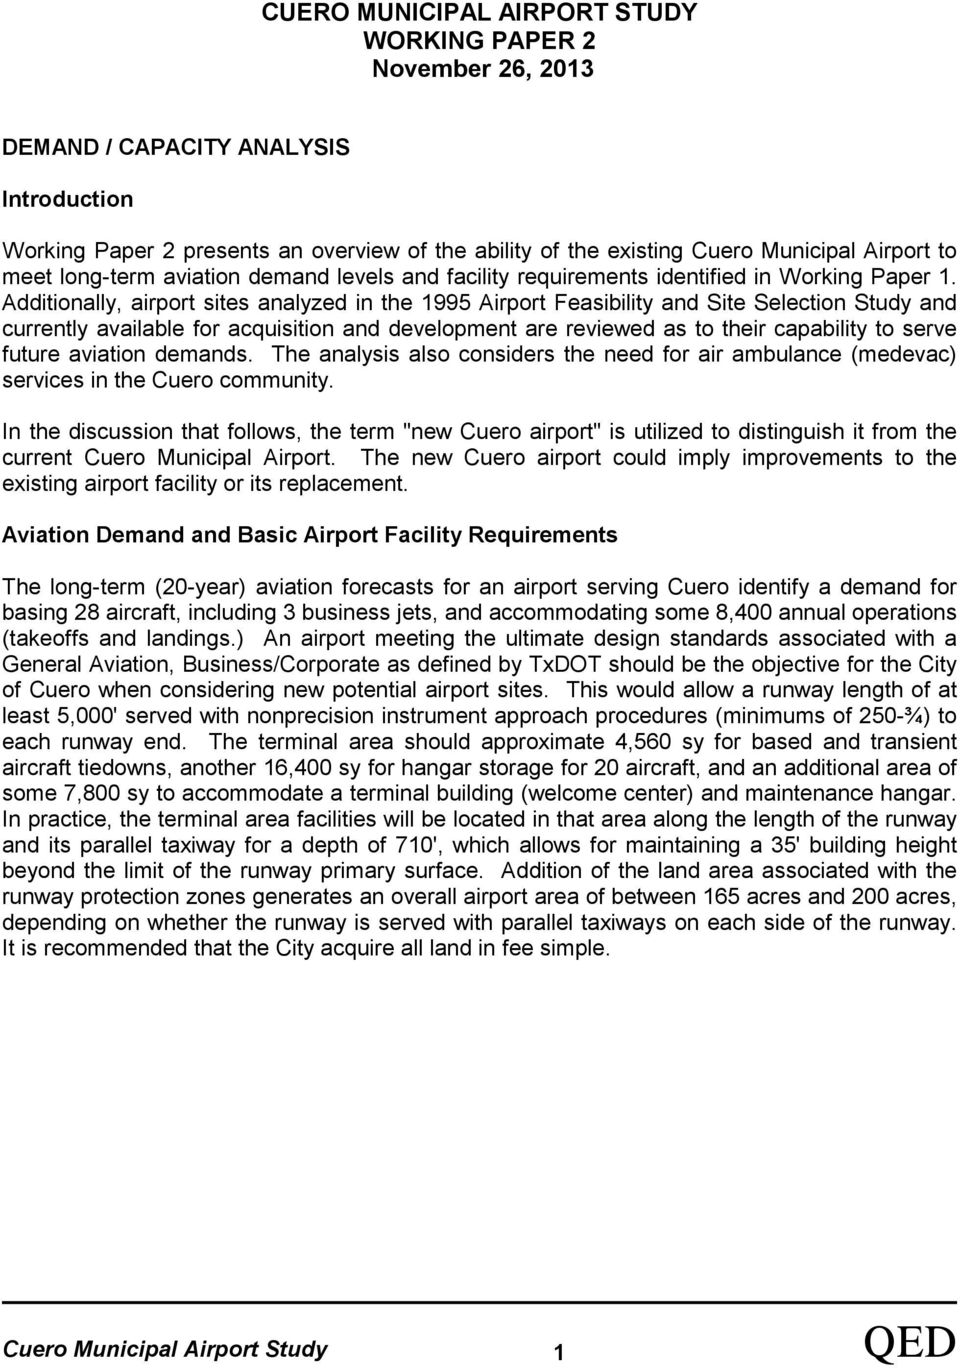 Additionally, airport sites analyzed in the 1995 Airport Feasibility and Site Selection Study and currently available for acquisition and development are reviewed as to their capability to serve